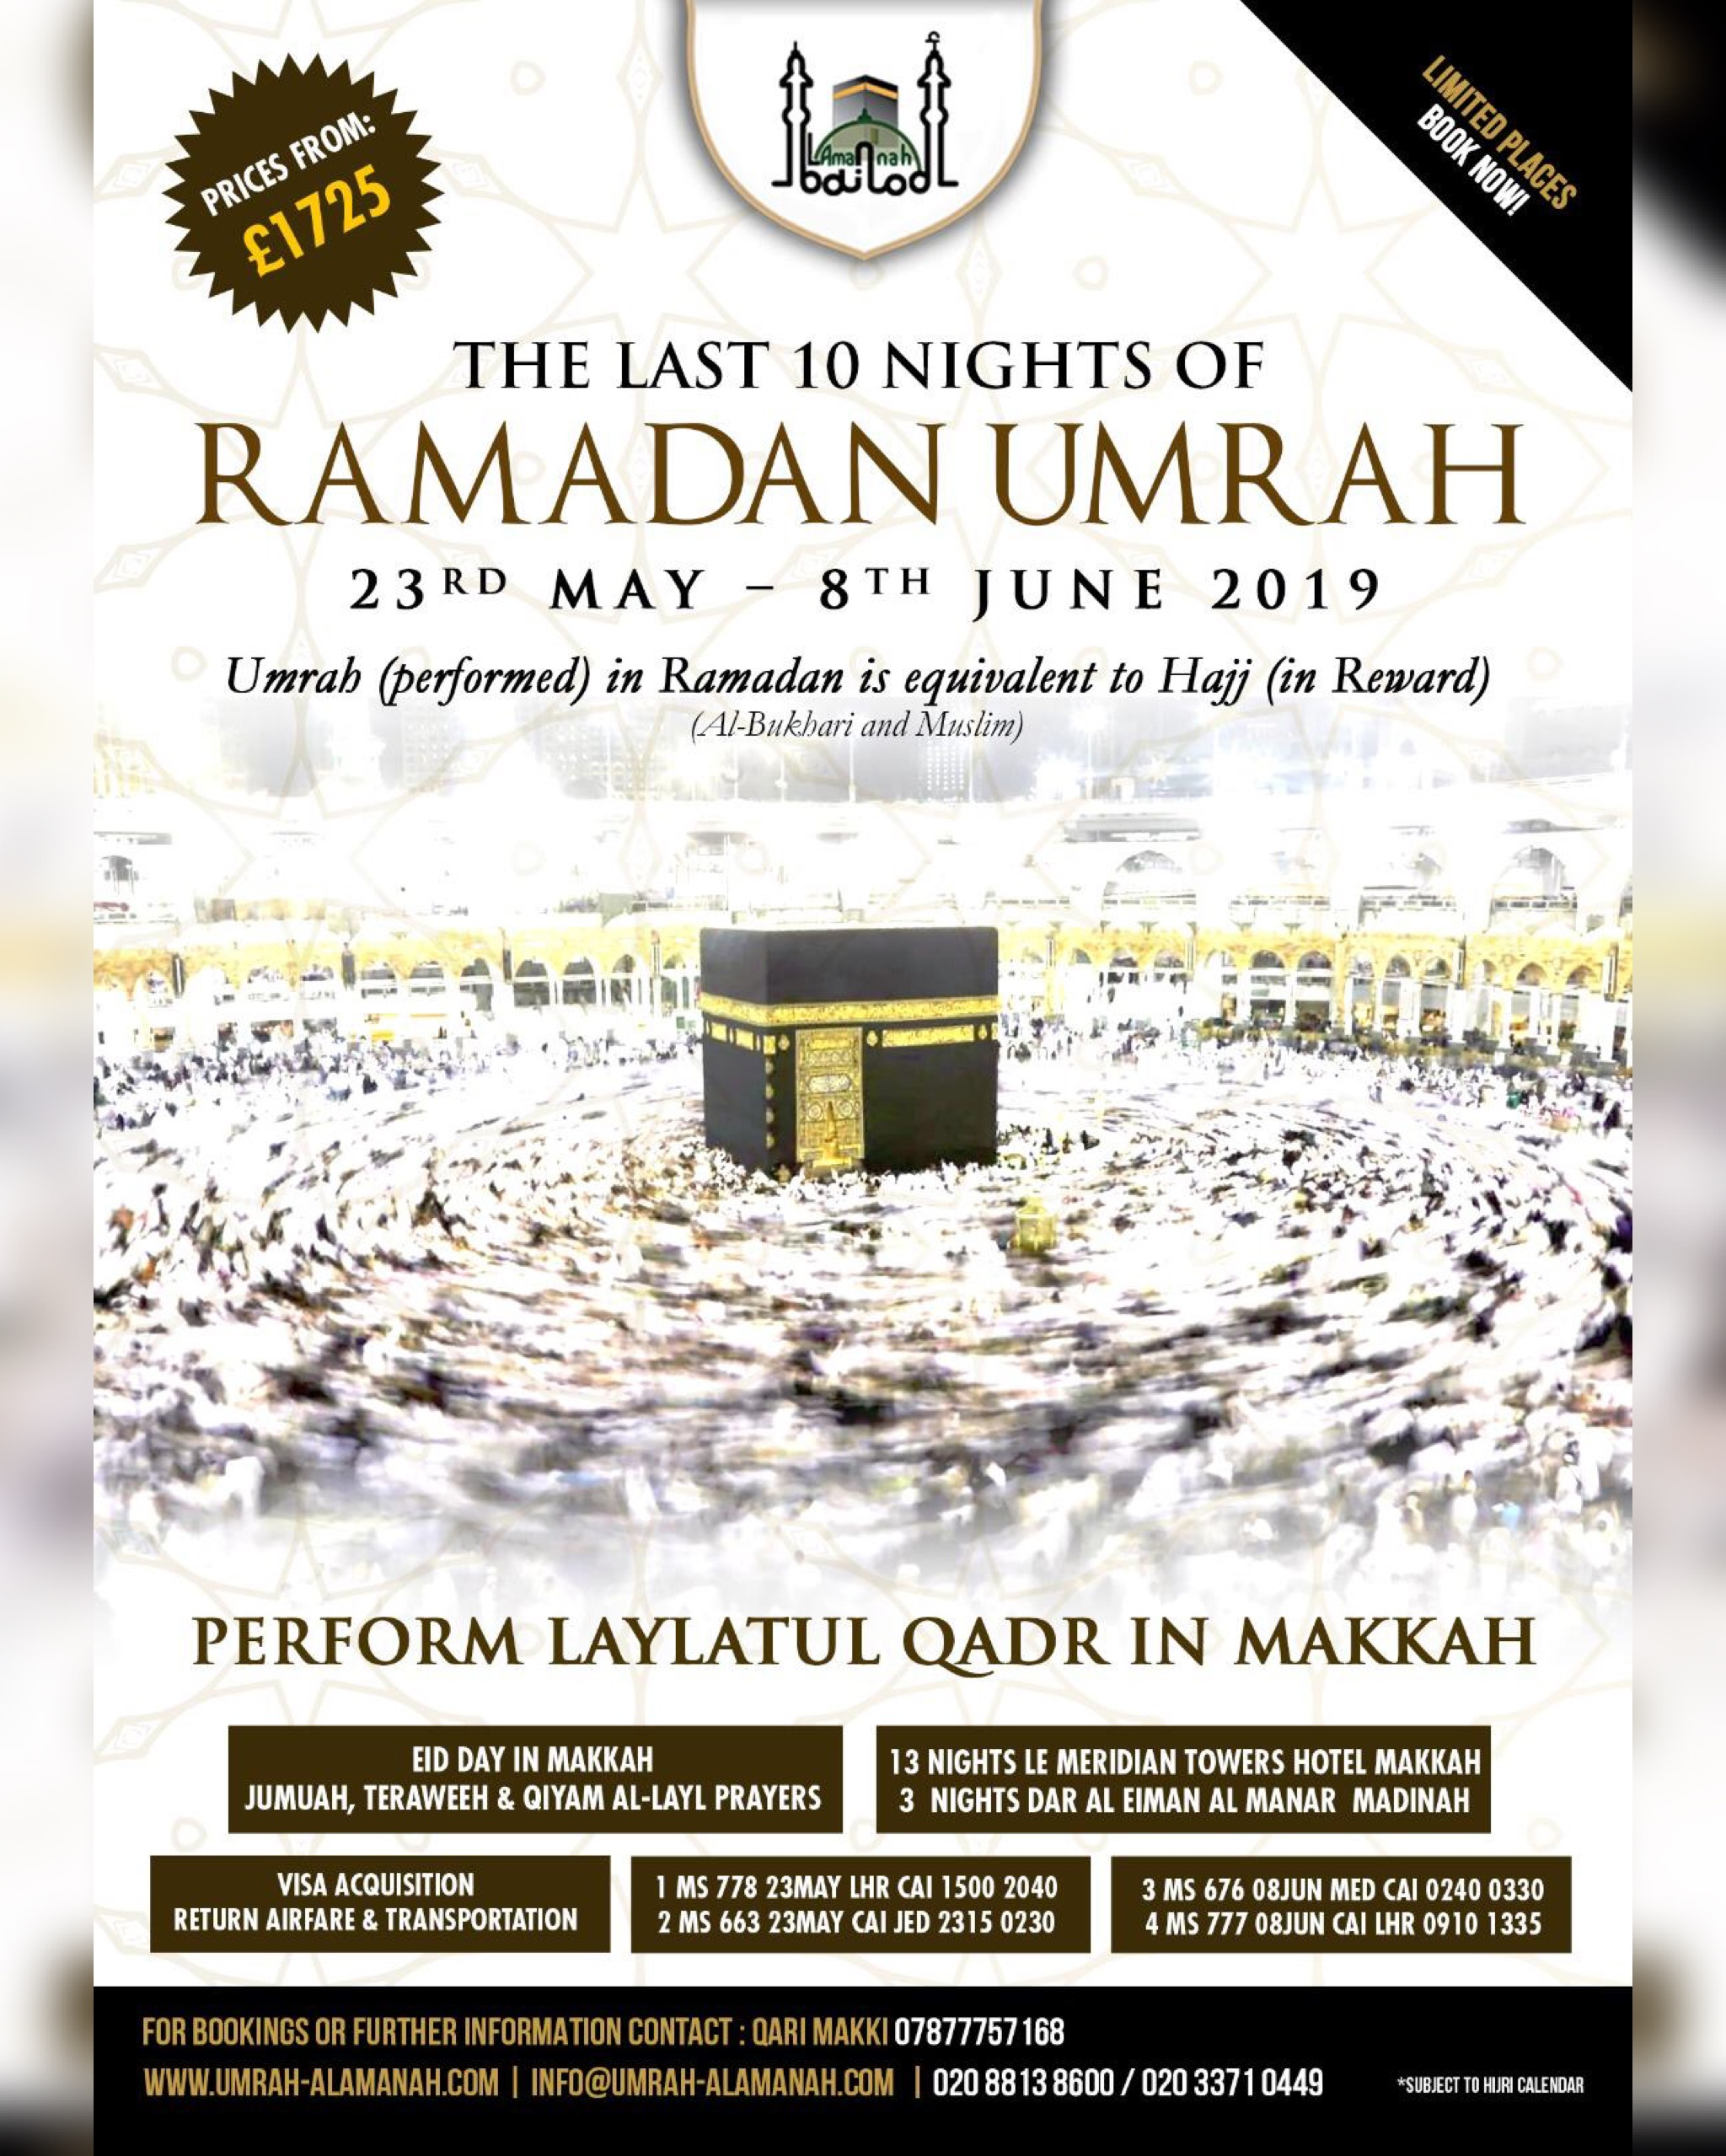 Hajj Packages in UK | Cheap Hajj Packages | 5 Star Hajj Packages